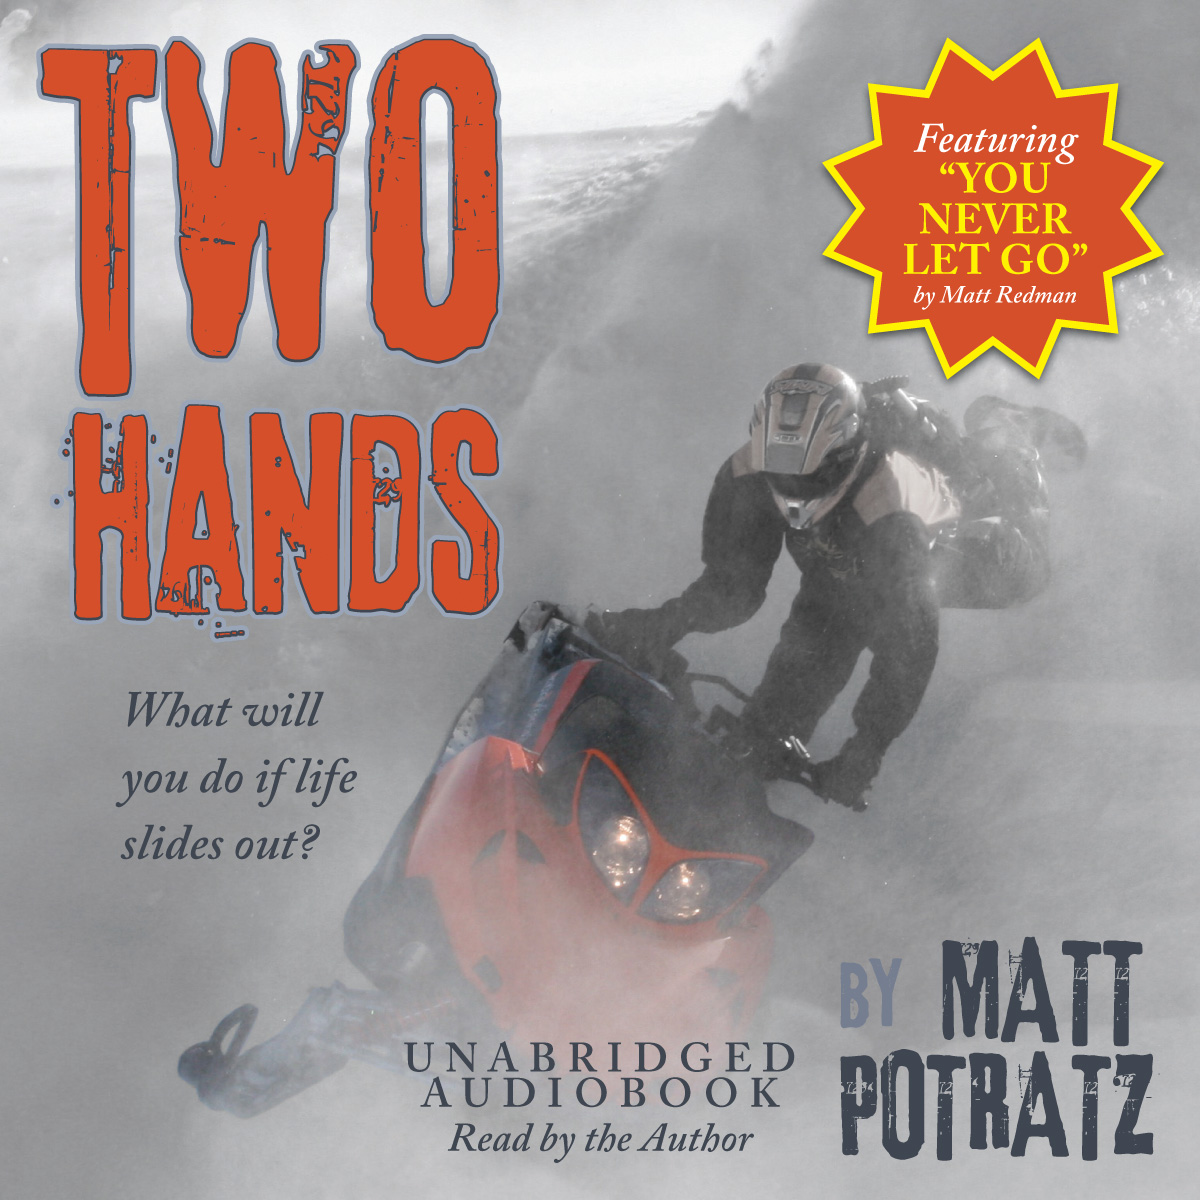 Two Hands Audiobook at Audible.com